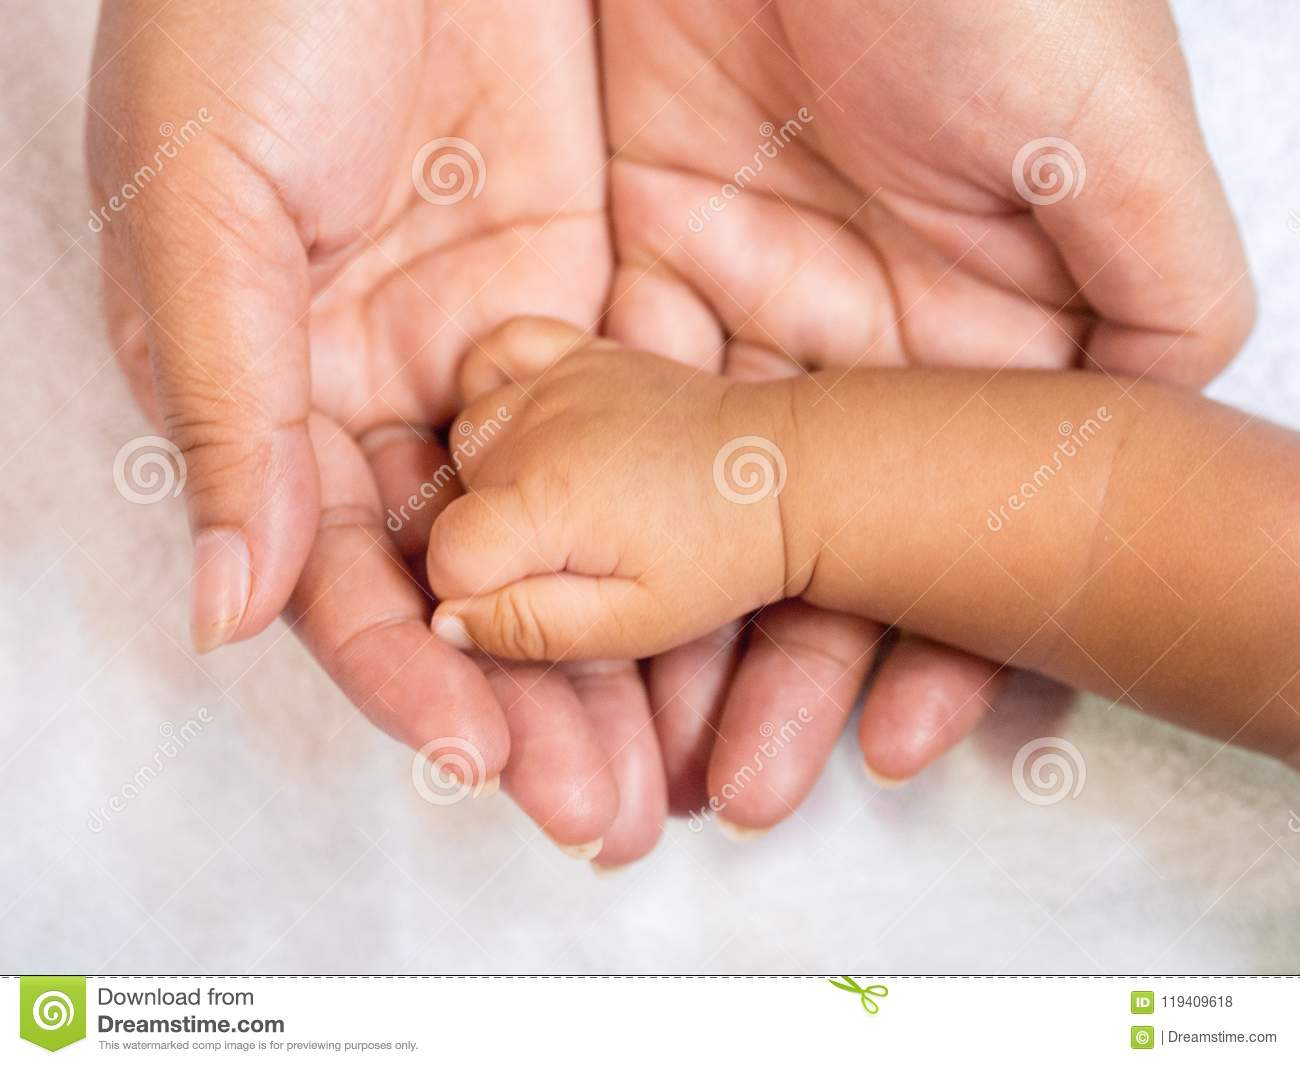 Close up baby hand on mother`s hands. Love and family concept.